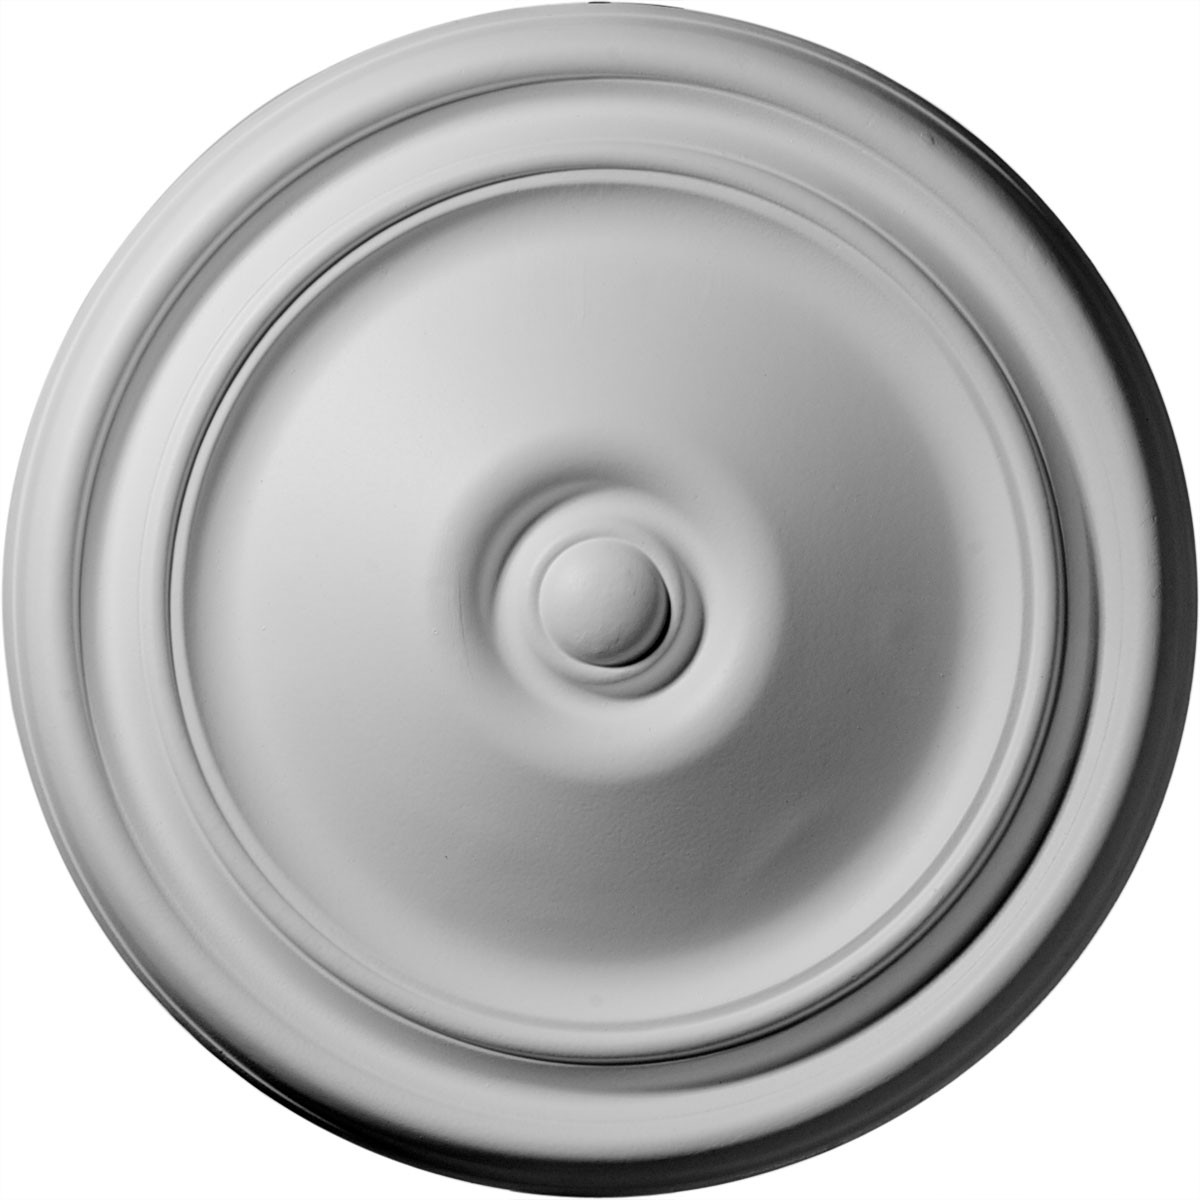 """EM-CM12RE - 12""""OD x 1 3/4""""P Reece Ceiling Medallion (Fits Canopies up to 2 3/8"""")"""